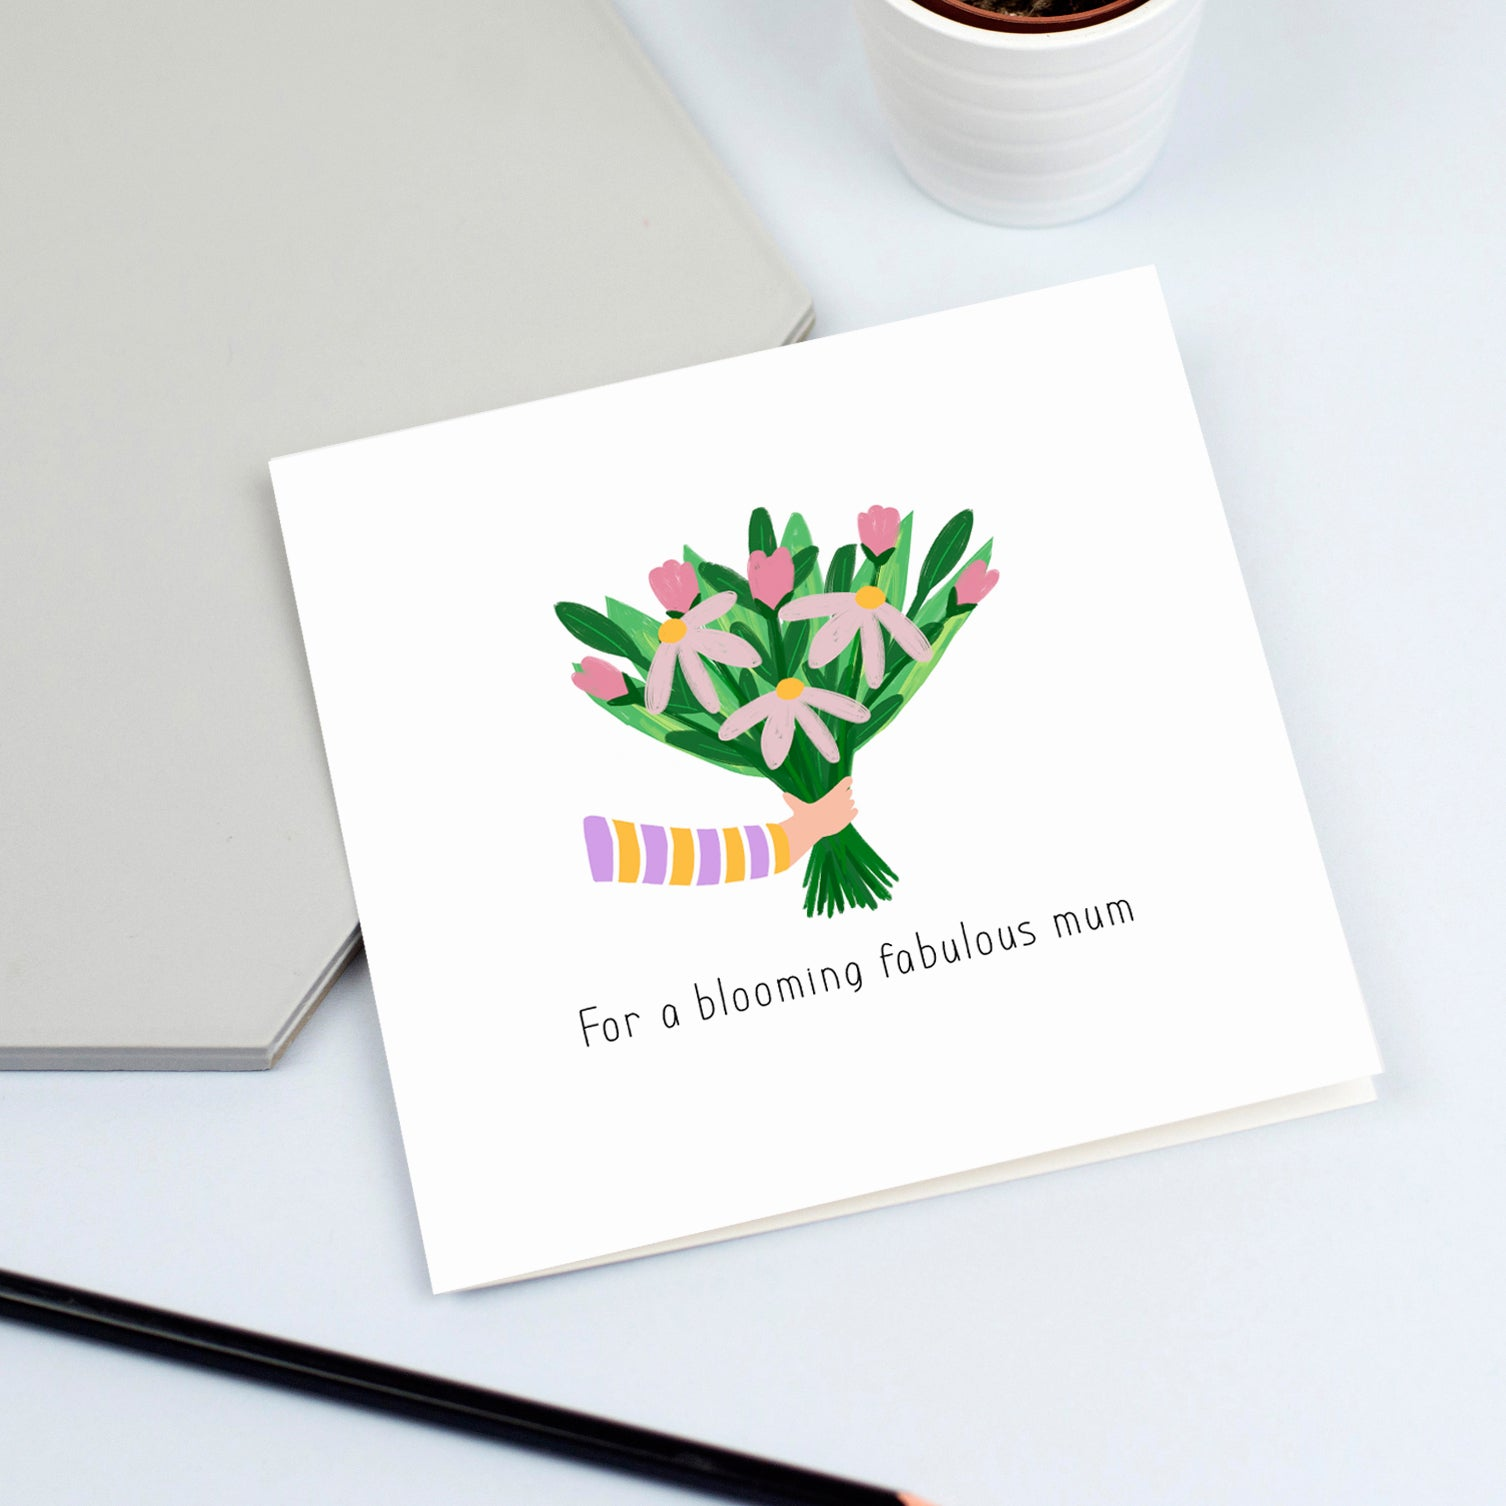 blooming fabulous mum card